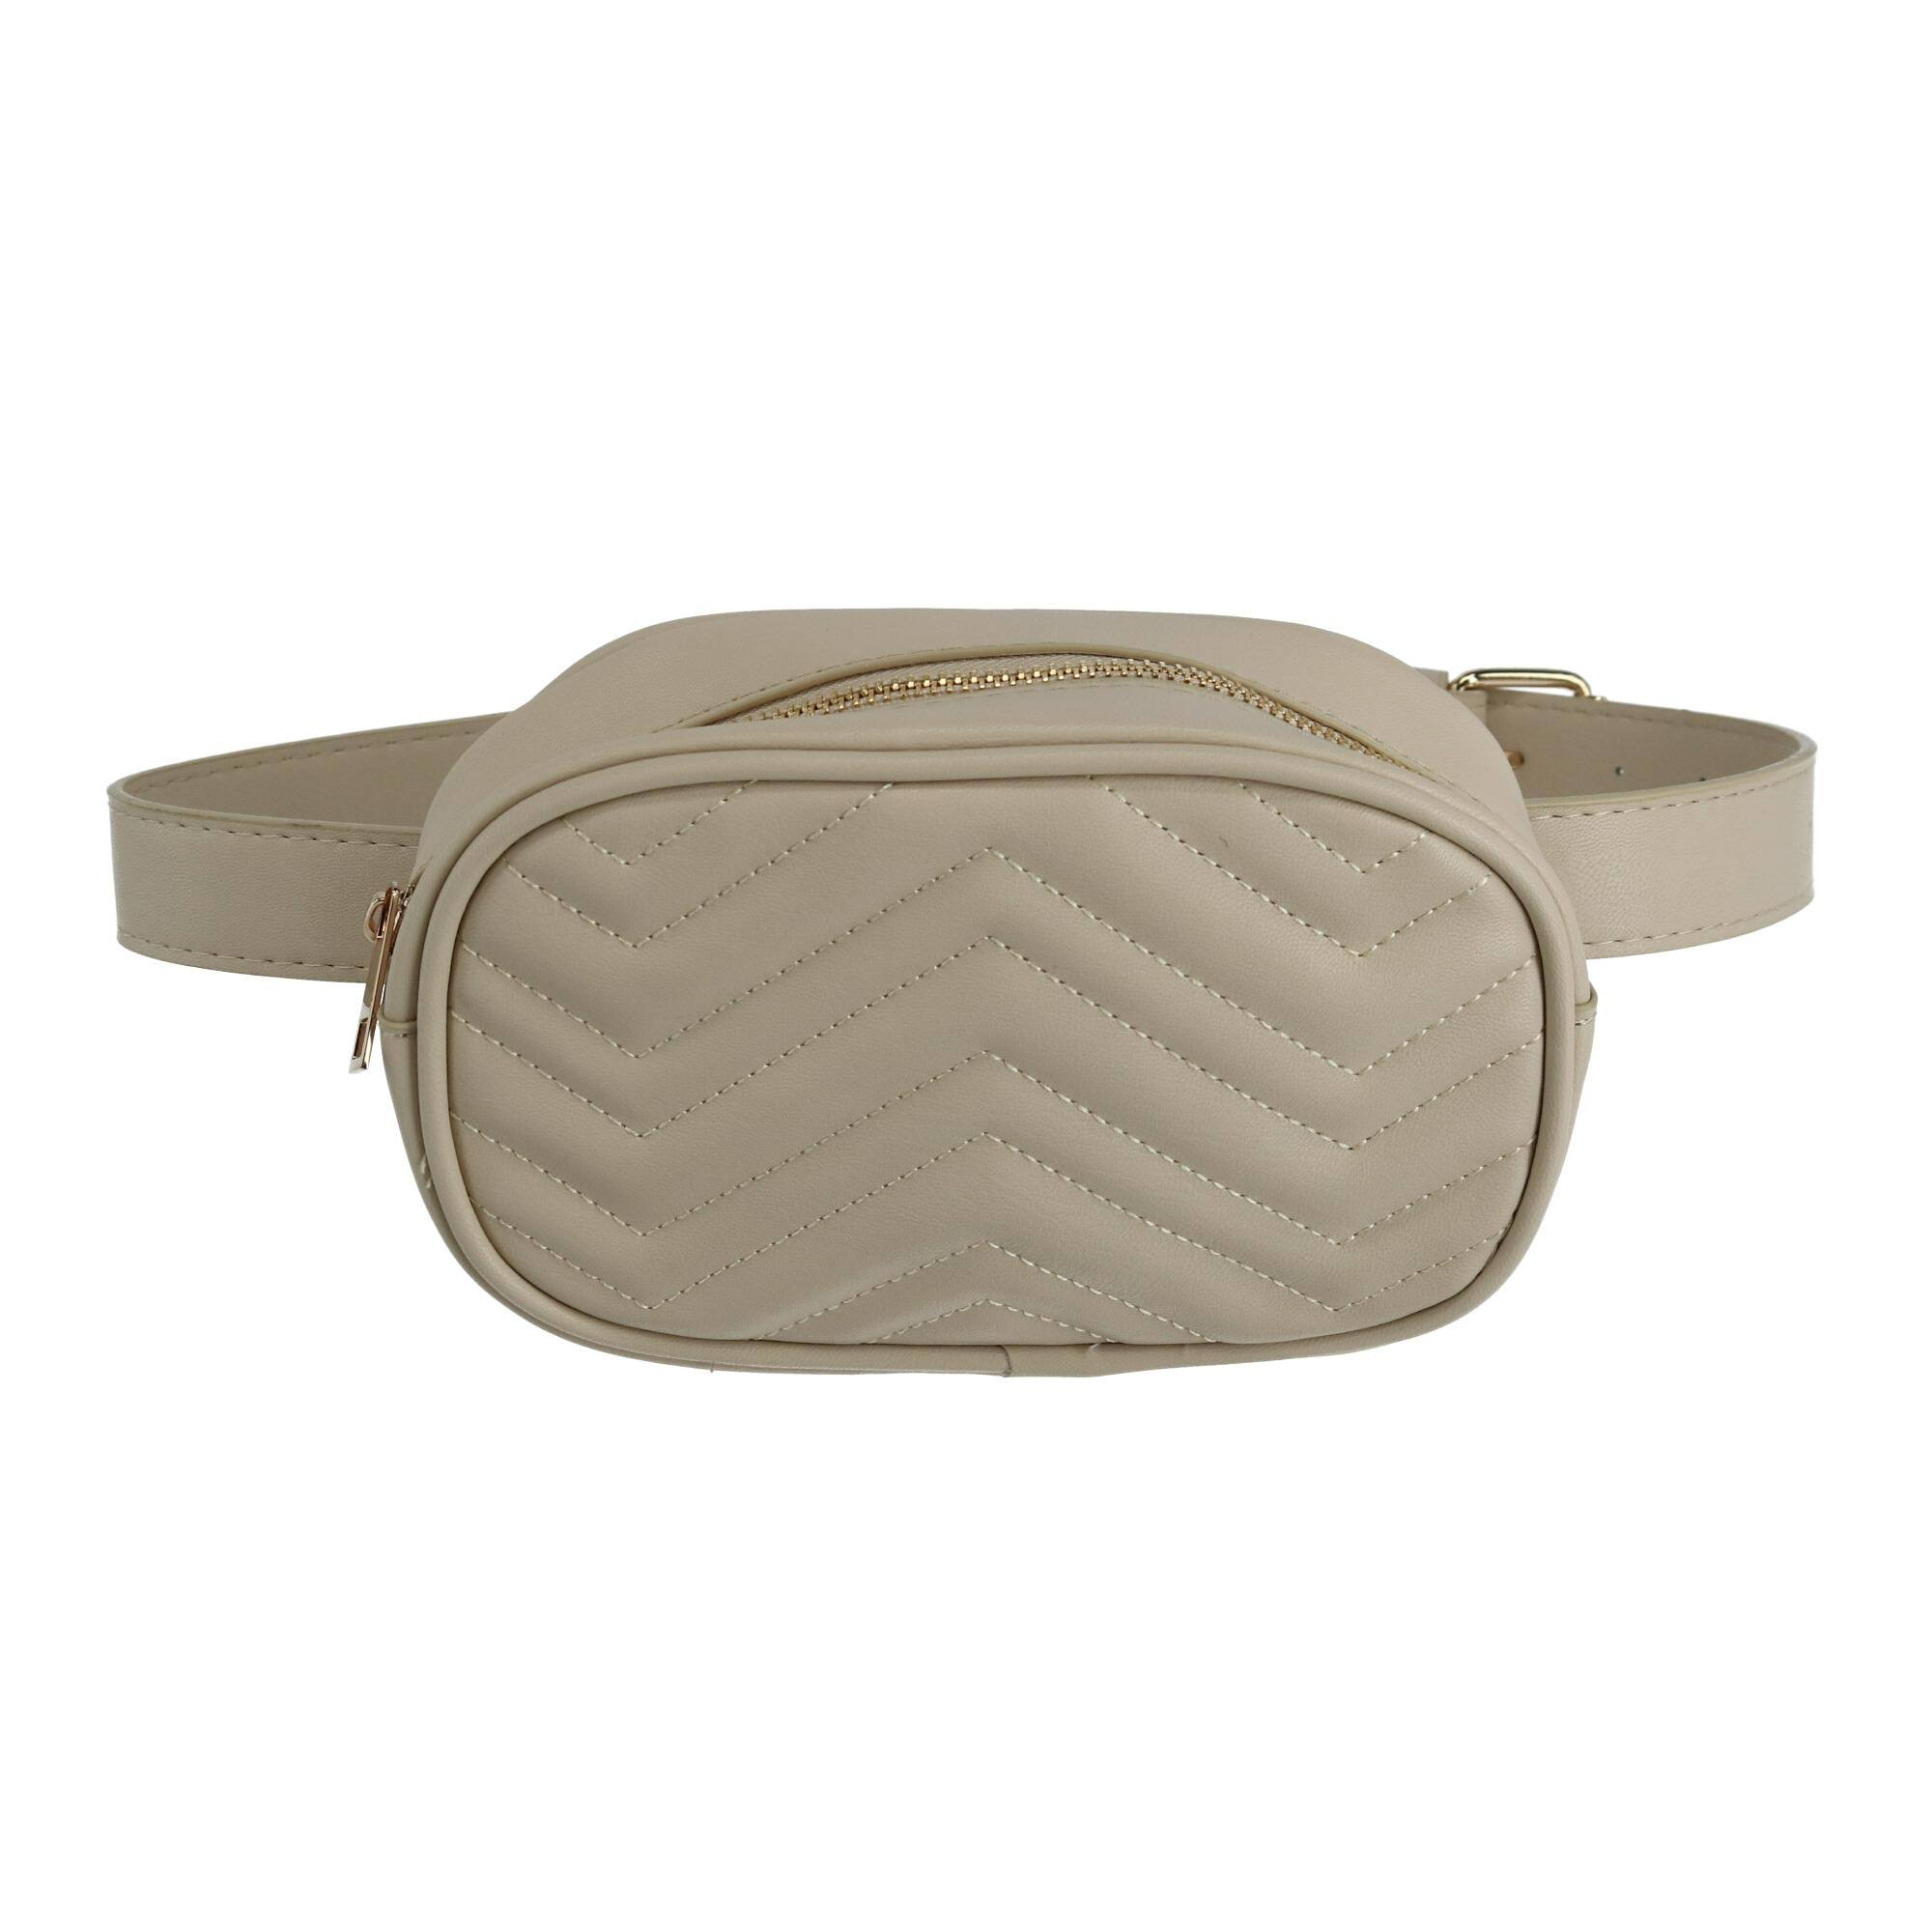 Urban Energy Quilted Convertible Belt Bag - Beige One Size